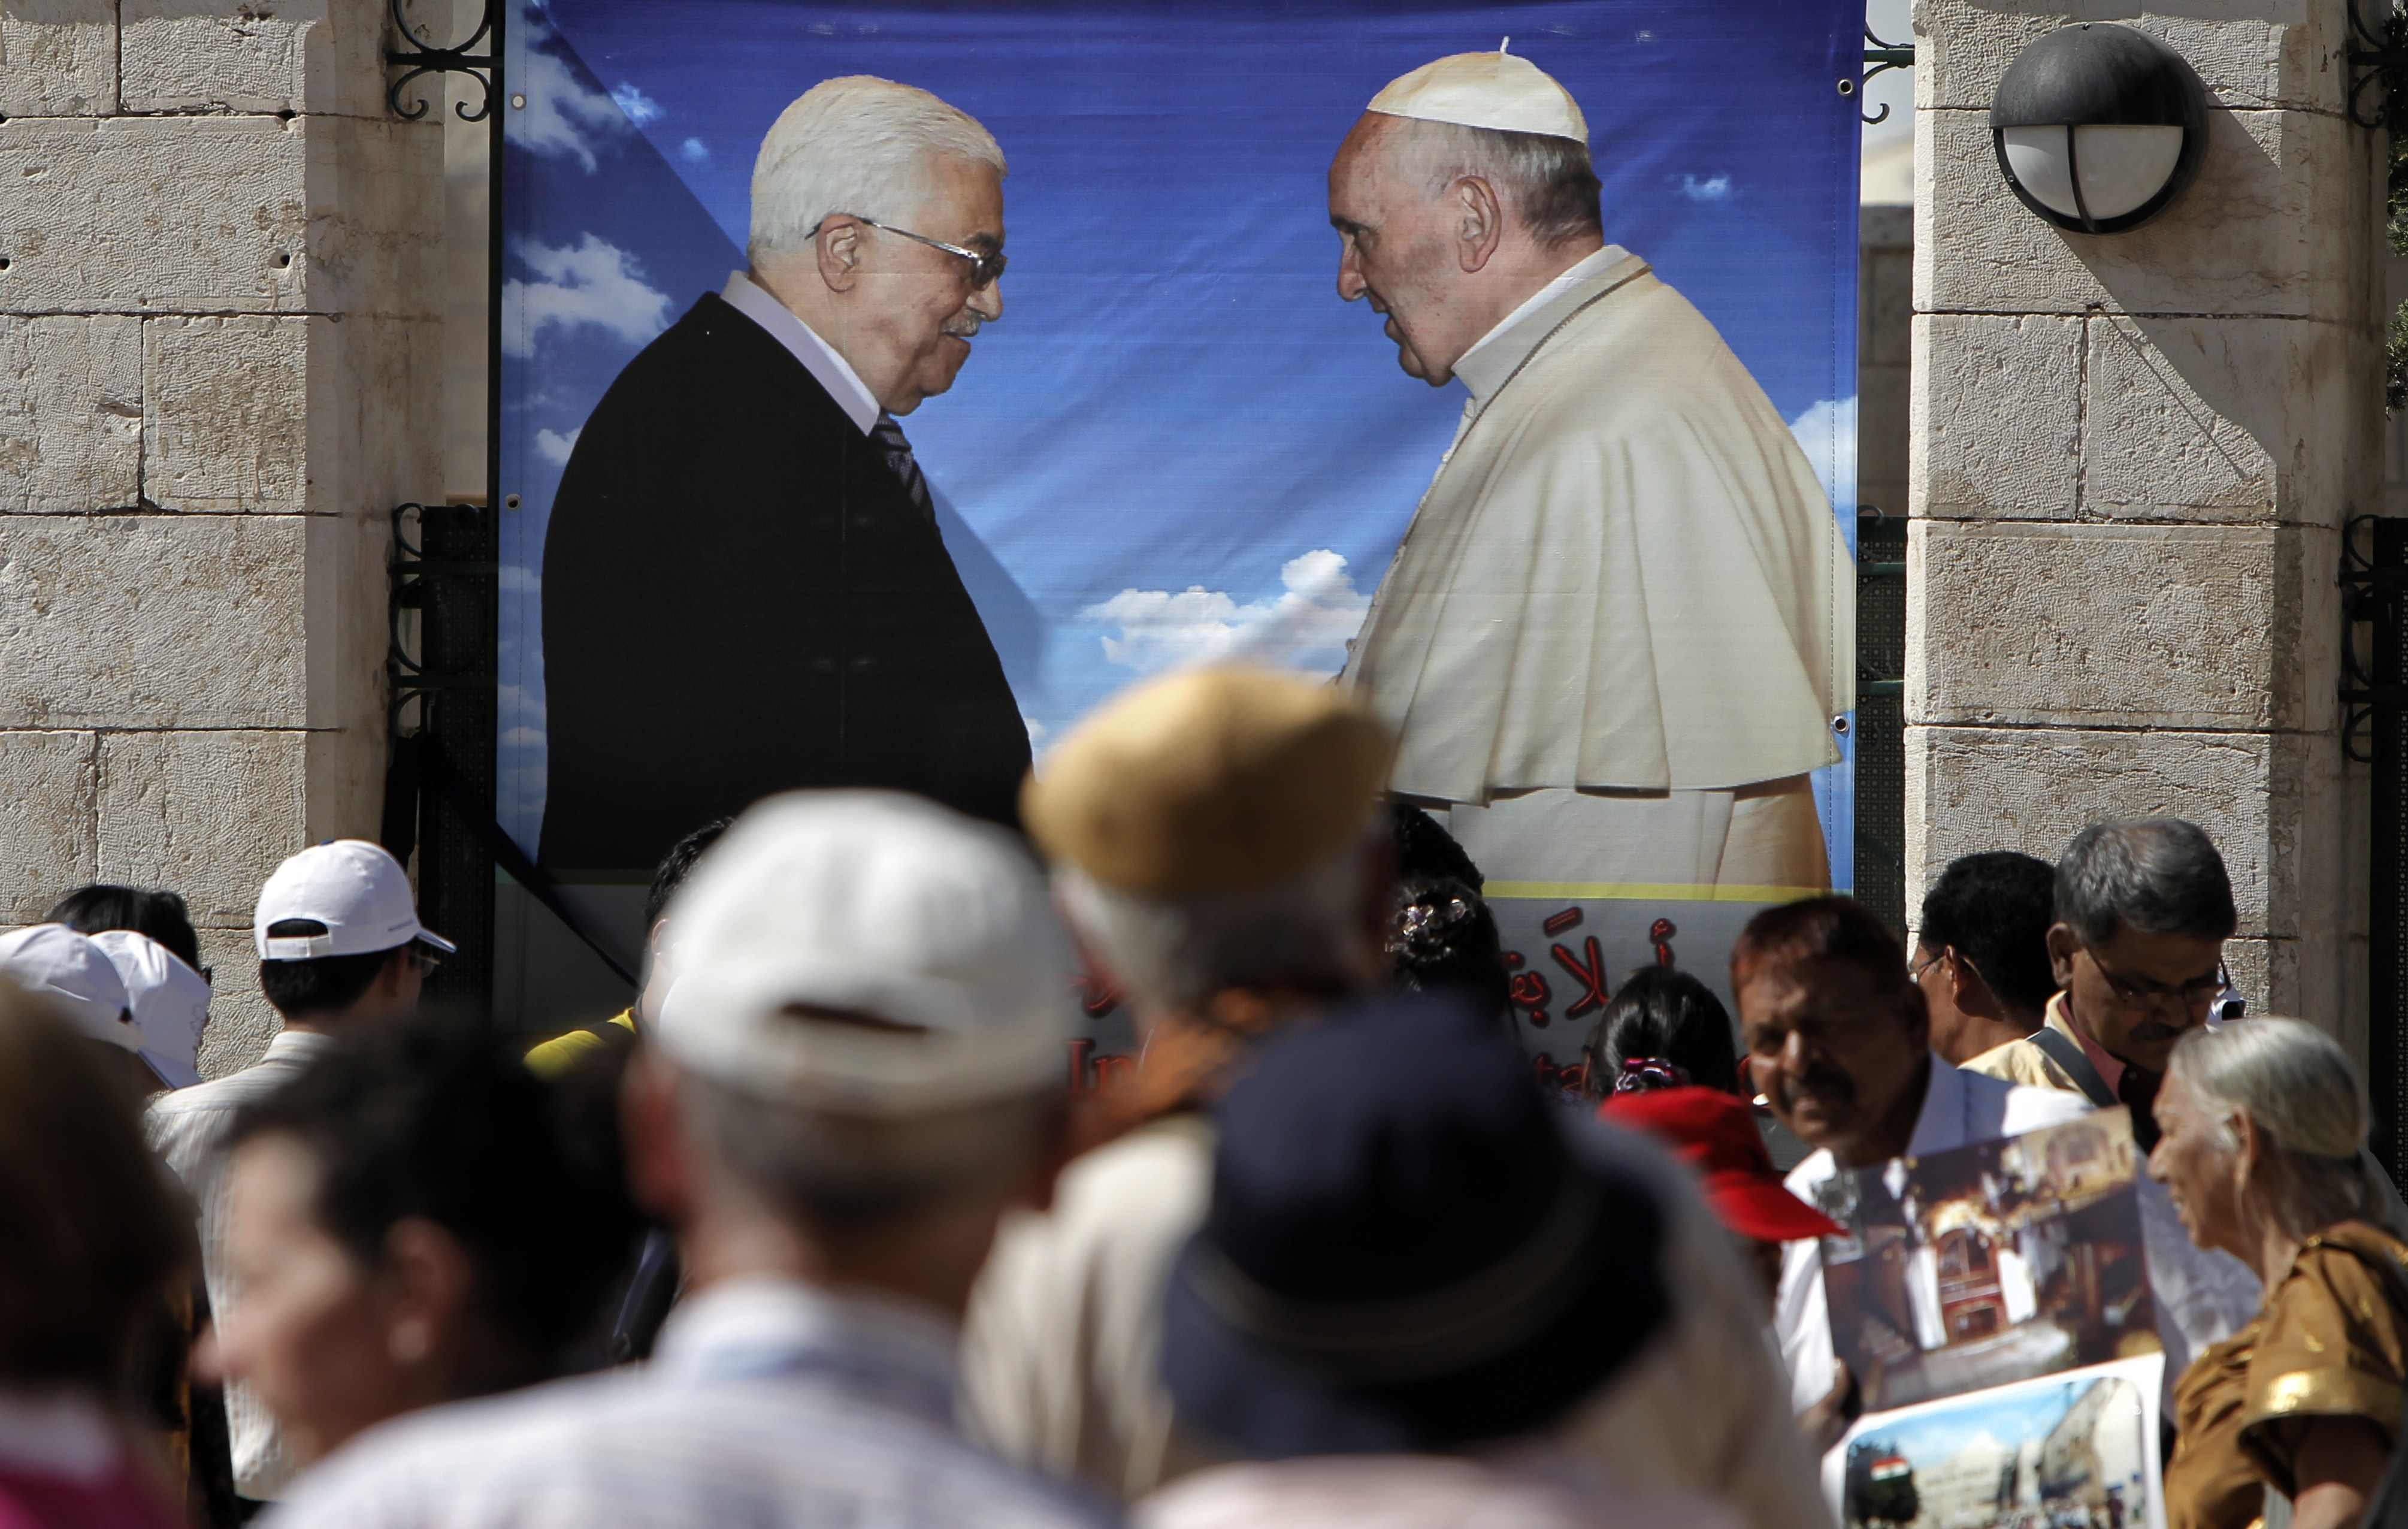 Tourists walk past a banner bearing portraits of Pope Francis and Palestinian Authority president Mahmud Abbas (L), on May 18, 2014, in front of the Church of Nativity, in the West Bank Town of Bethlehem. The pope's visit is scheduled to begin in Jordan on May 24, and he is then due to spend two days in the Holy Land from May 25.  (AFP PHOTO / AHMAD GHARABLI)